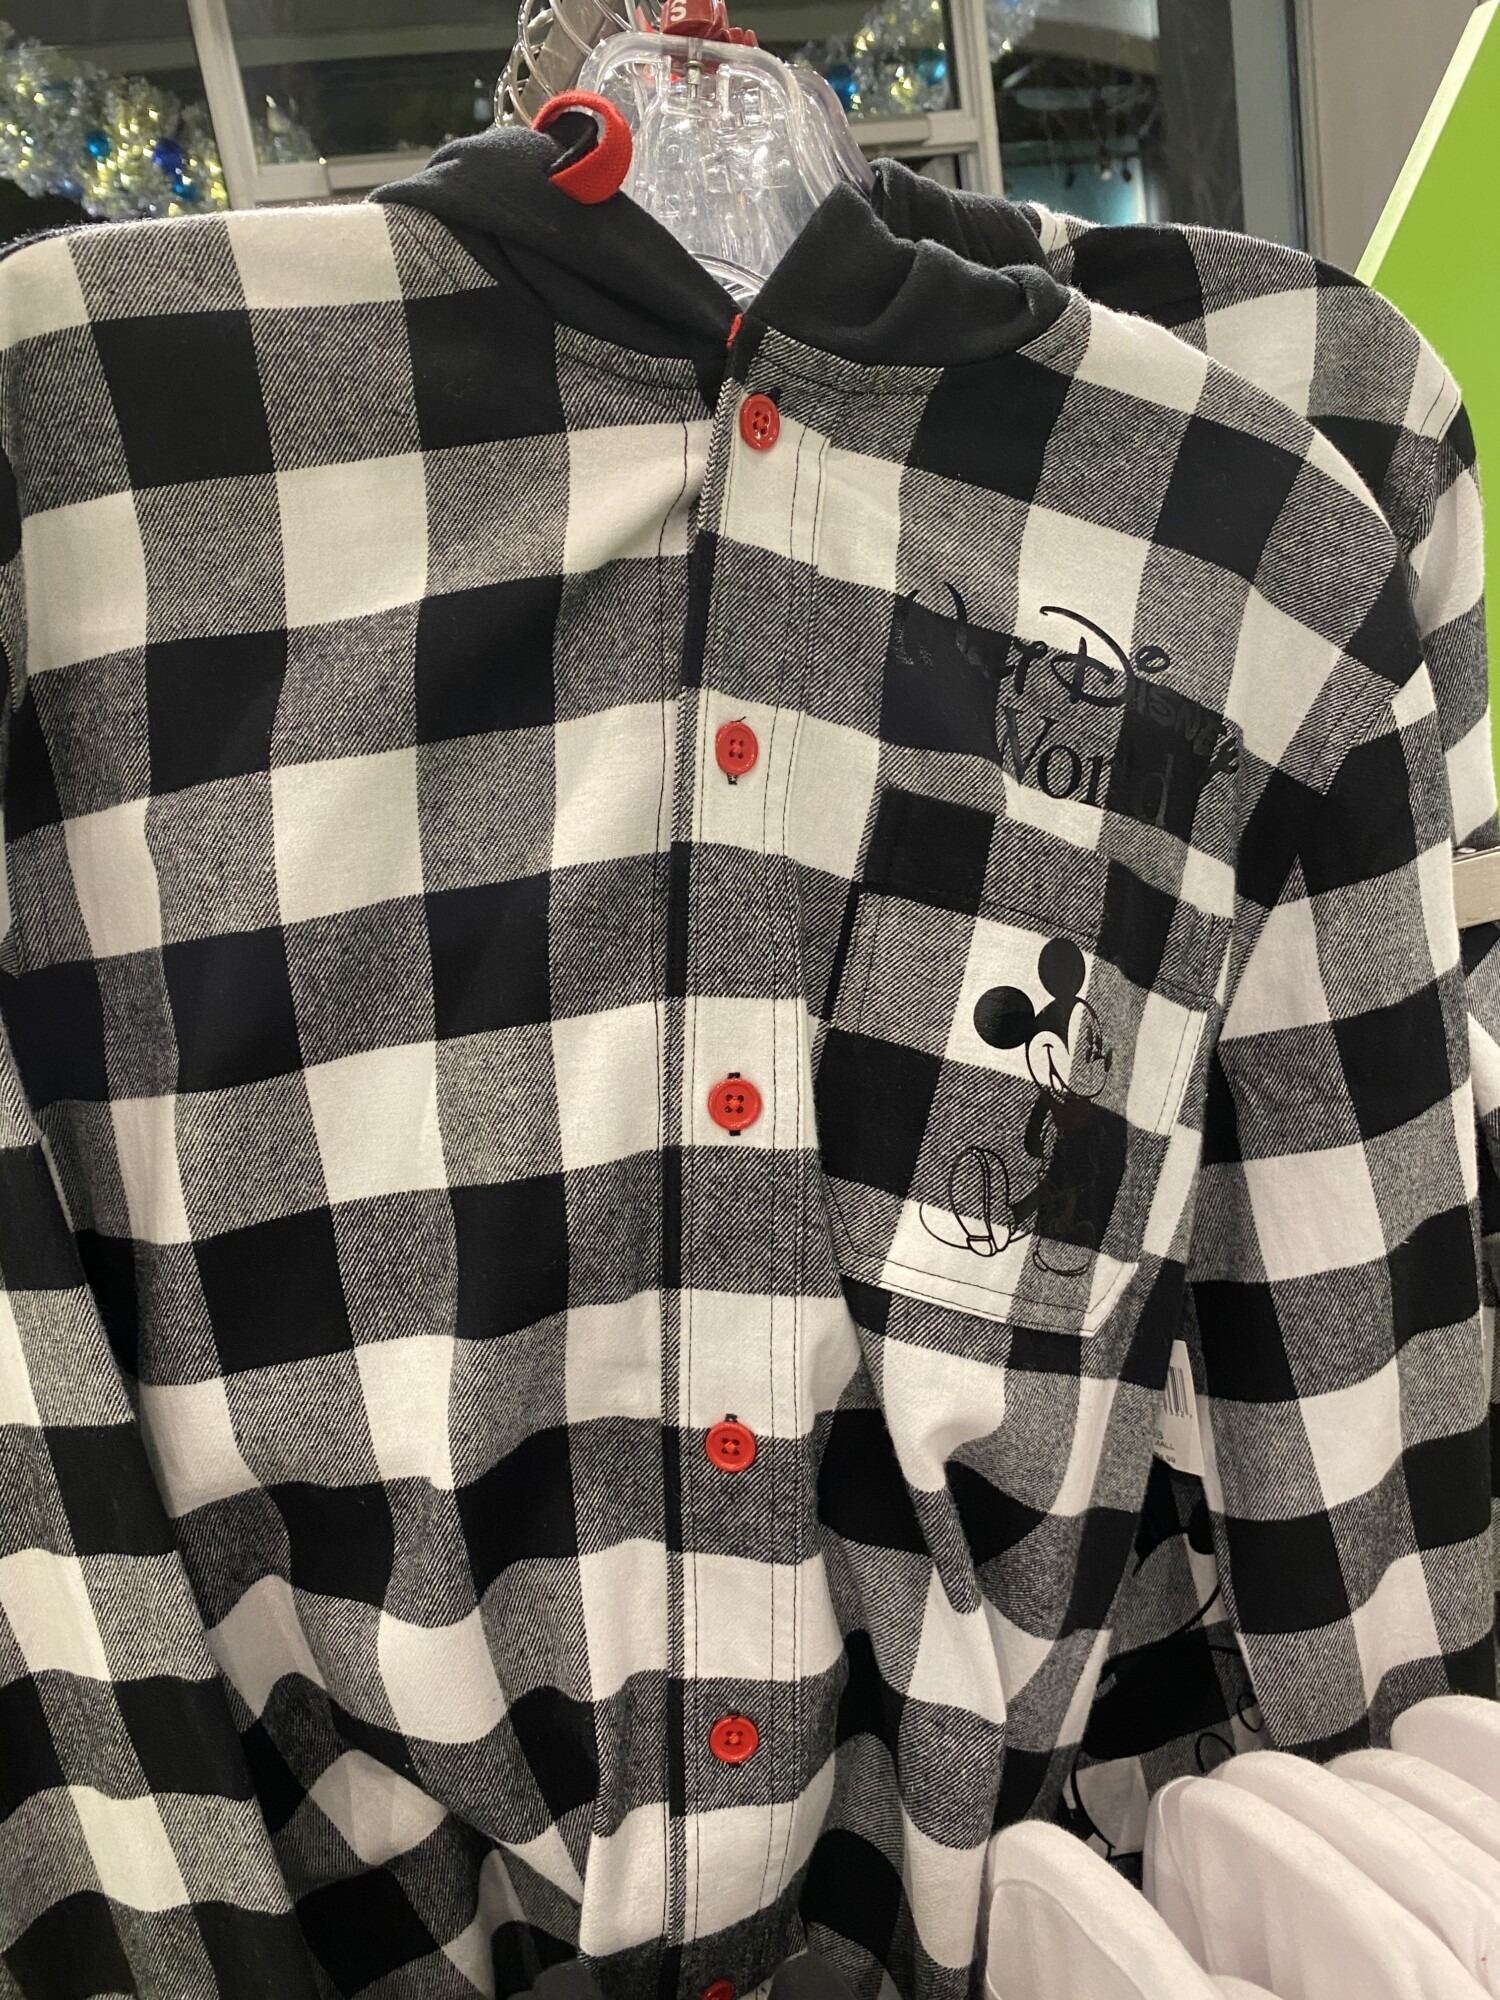 Mad for Plaid! More Fun Merch at Disney Springs 5